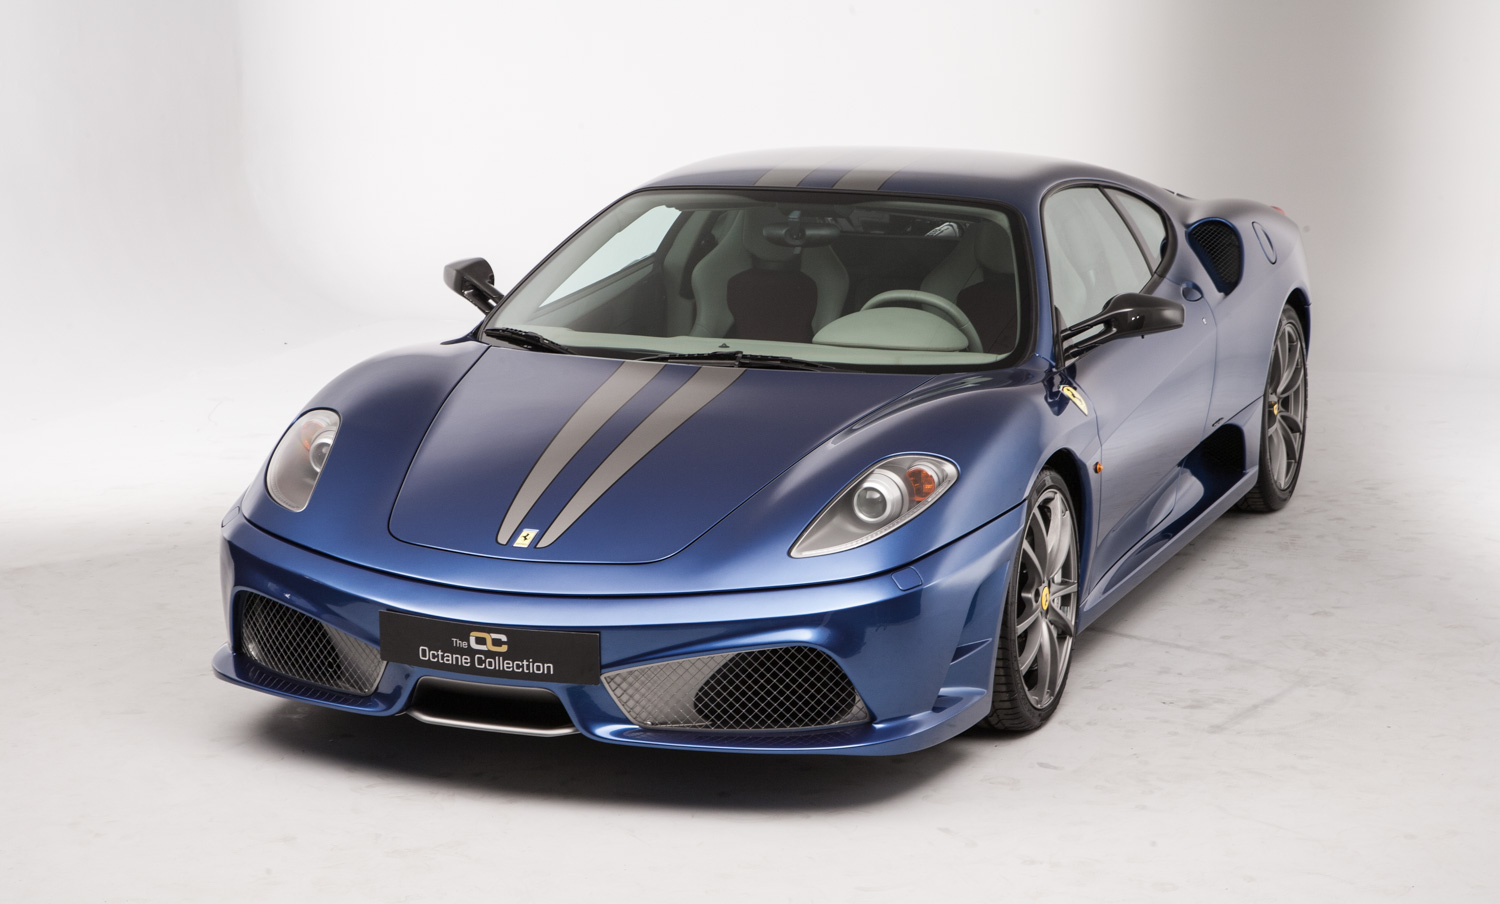 Ferrari F430 Scuderia The Octane Collection